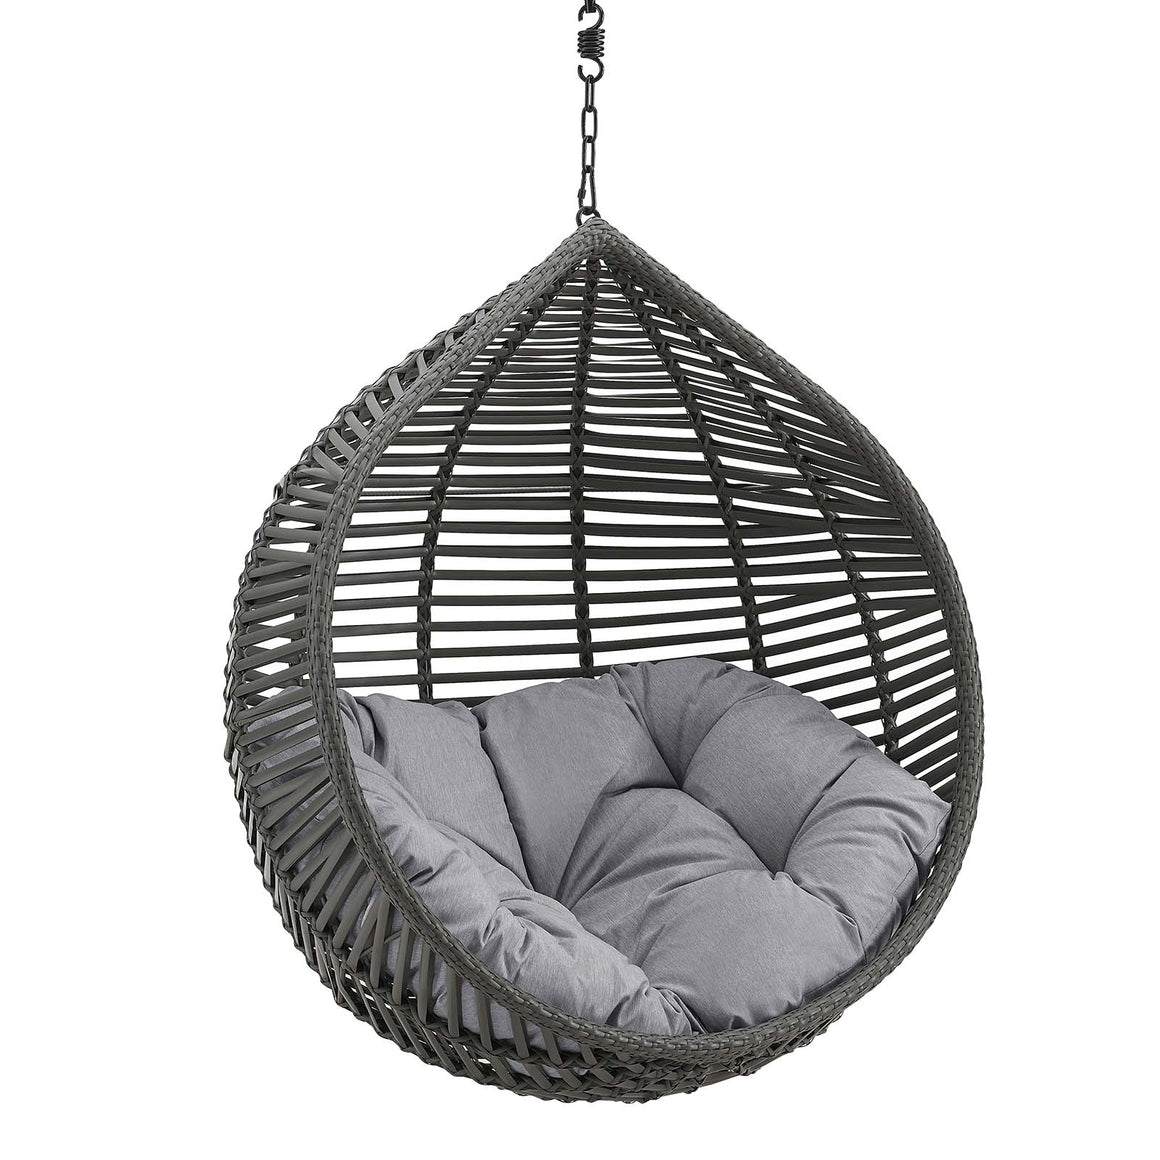 Garner Teardrop Outdoor Swing Chair Without Stand